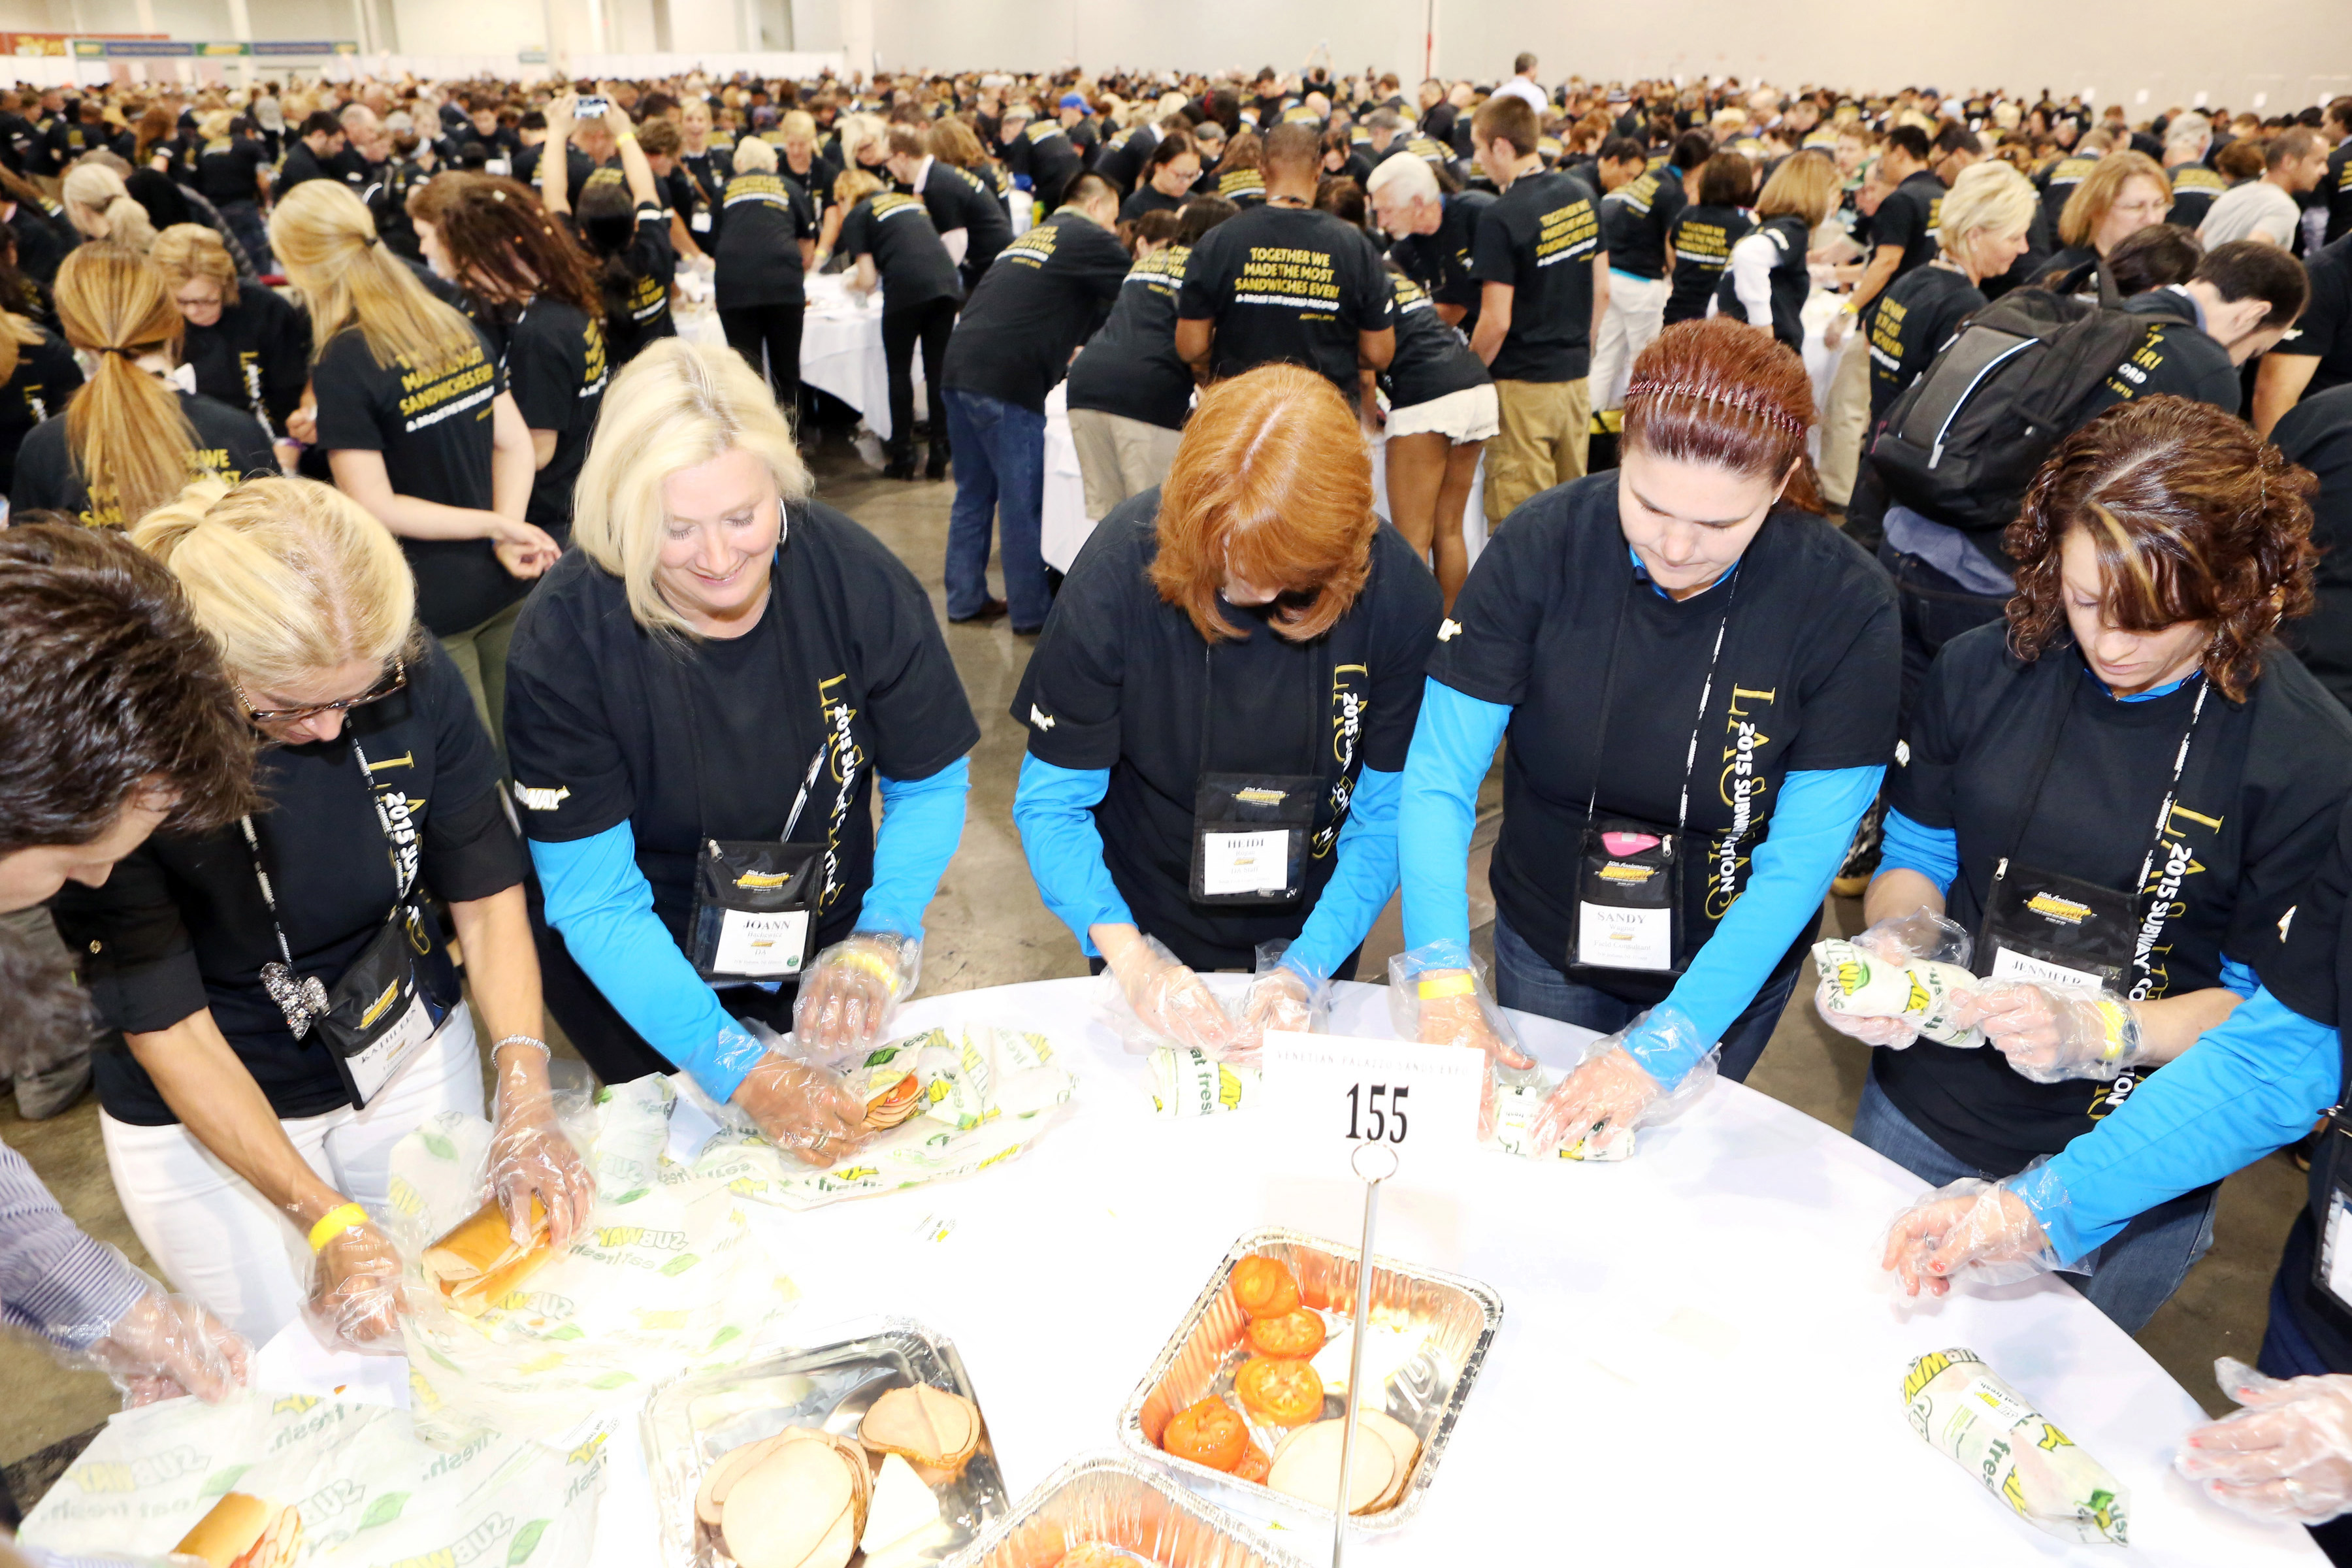 Sandwich-makers set a new Guinness World Record for most people making sandwiches simultaneously with 1,481 people during an event held at The Venetian Resort Hotel Casino on Aug. 1, 2015, in Las Vegas, Nevada.